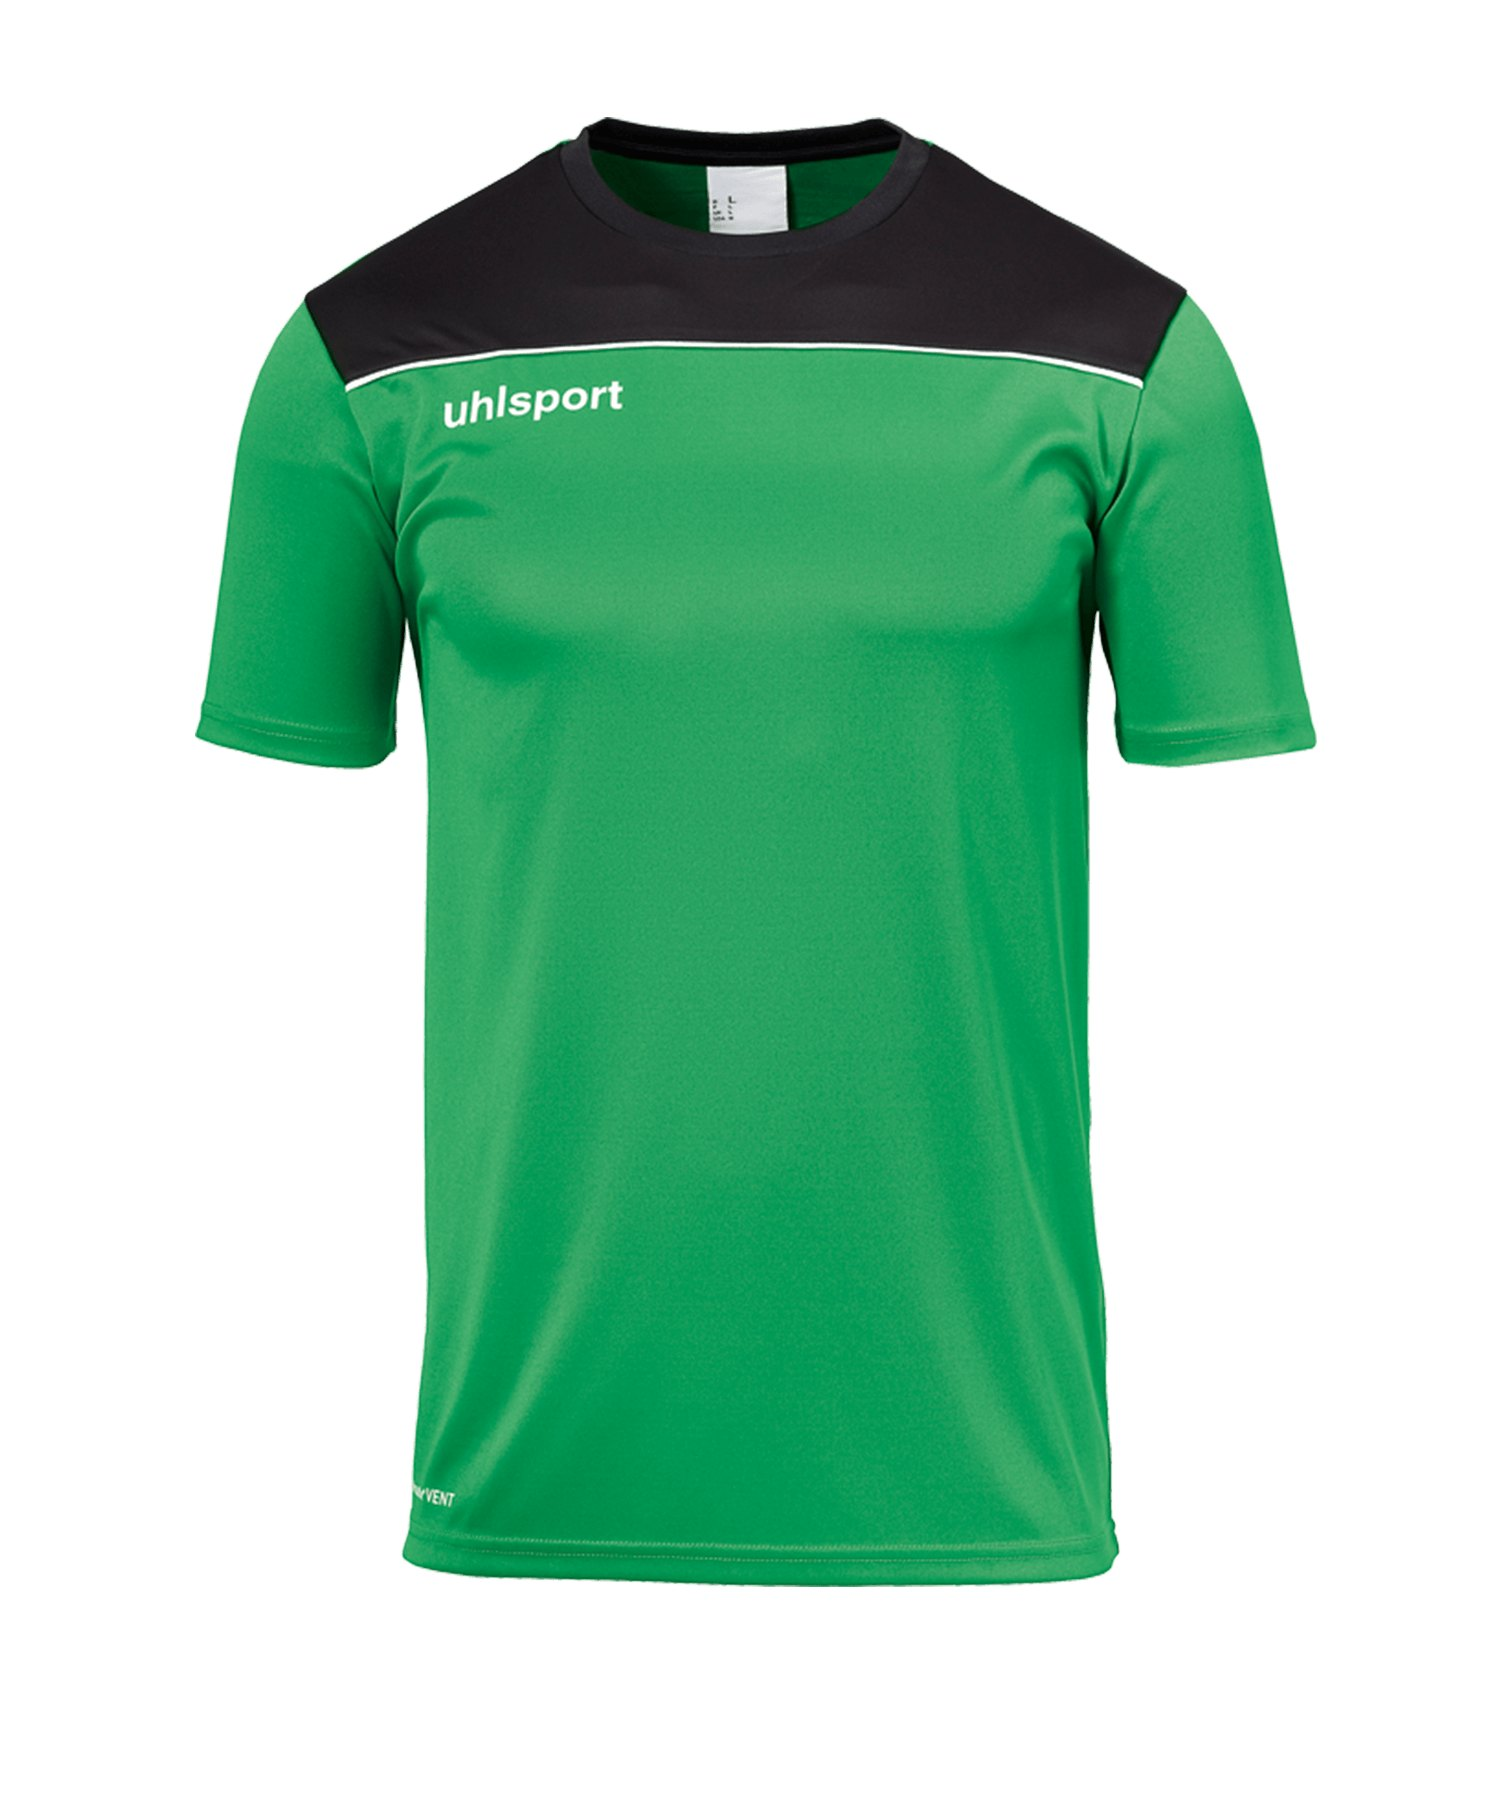 Uhlsport Offense 23 Trainingsshirt Kids Grün F06 - gruen